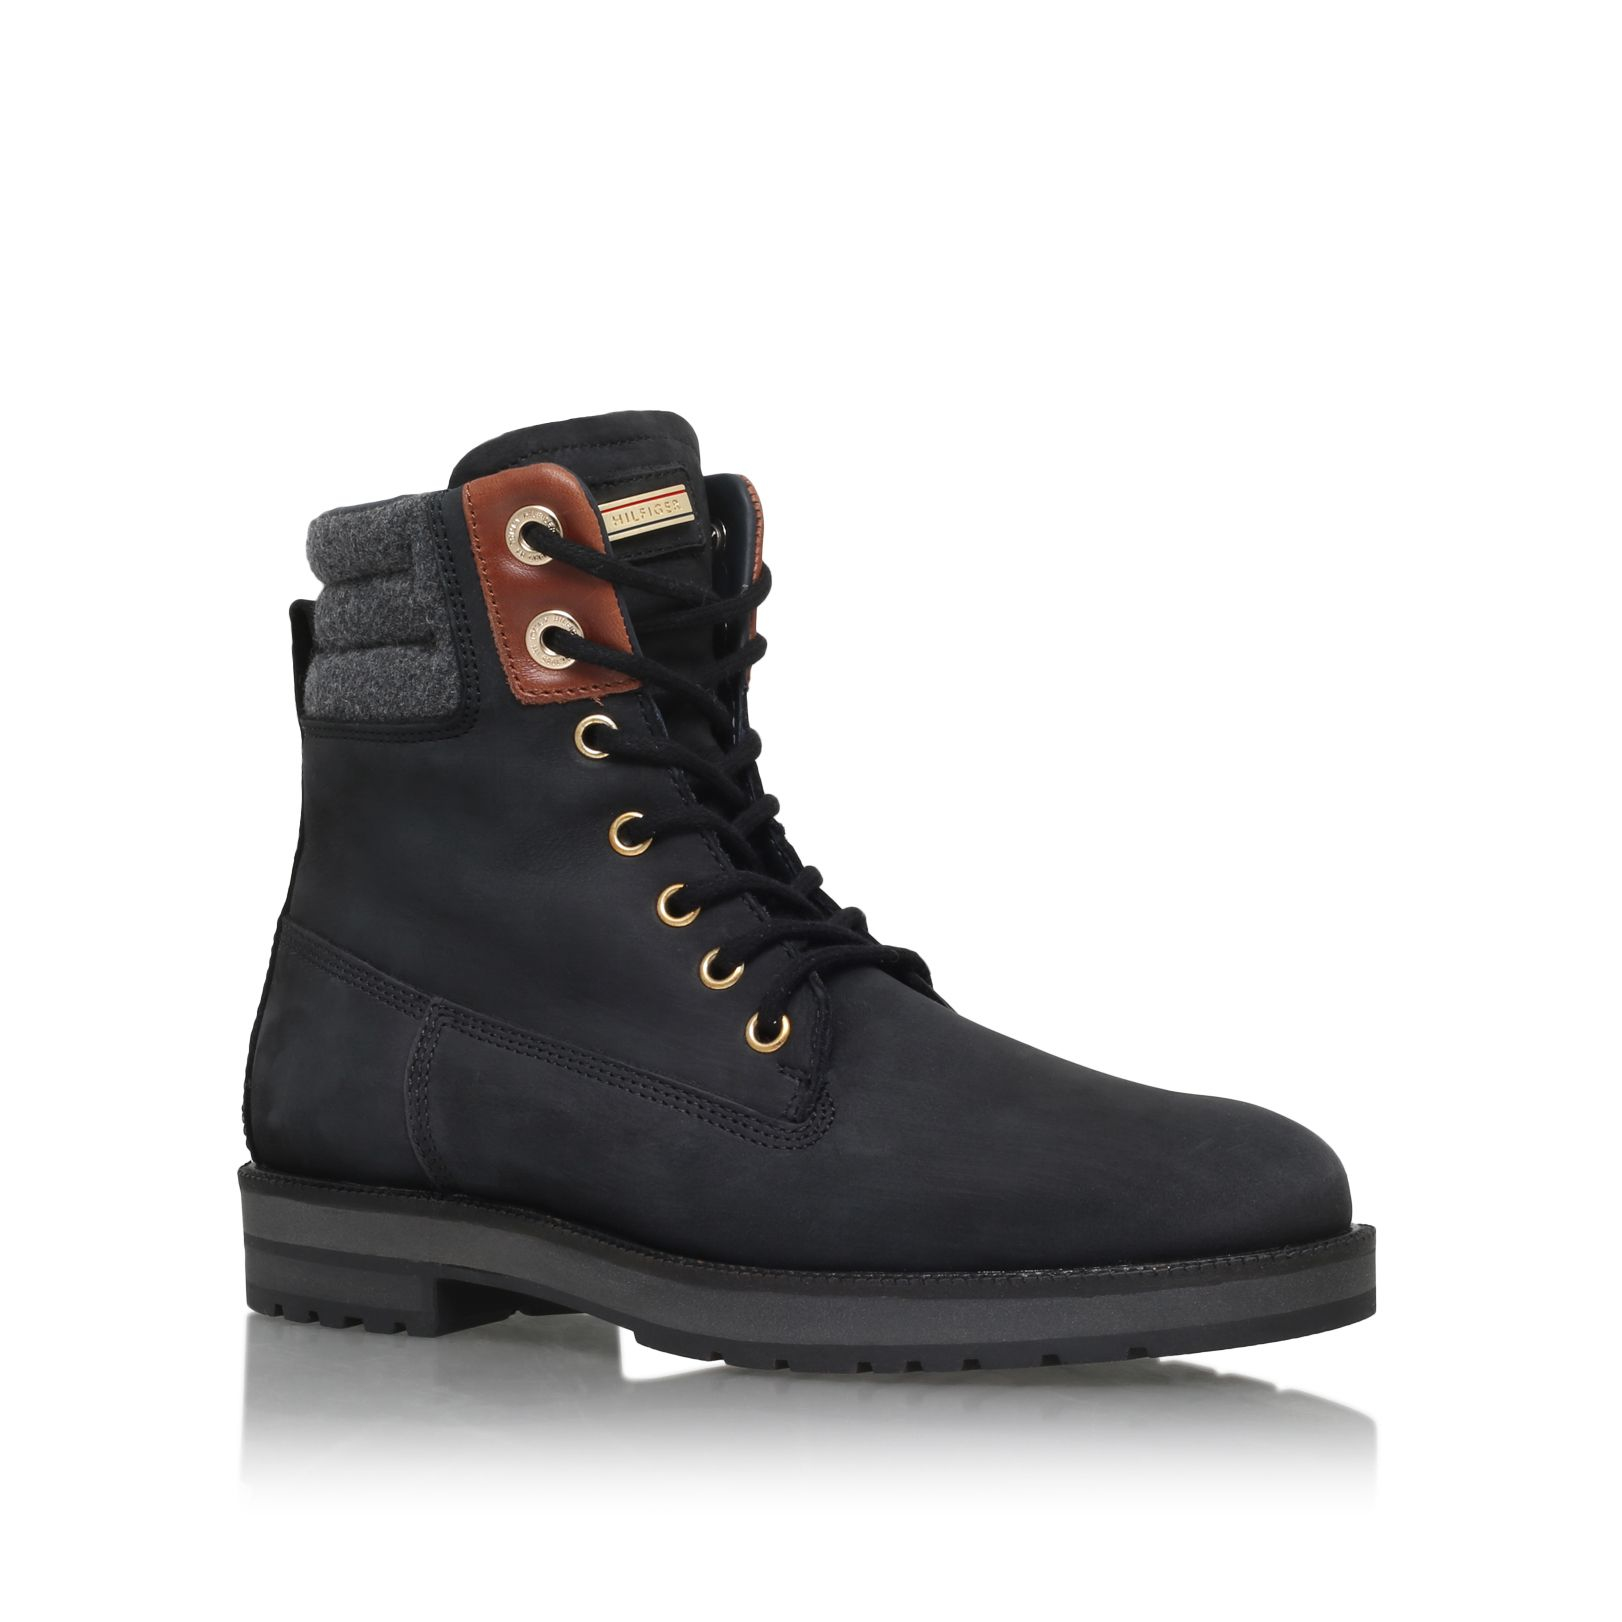 Tommy Hilfiger lace up boots sale pay with paypal mxMrS12qt